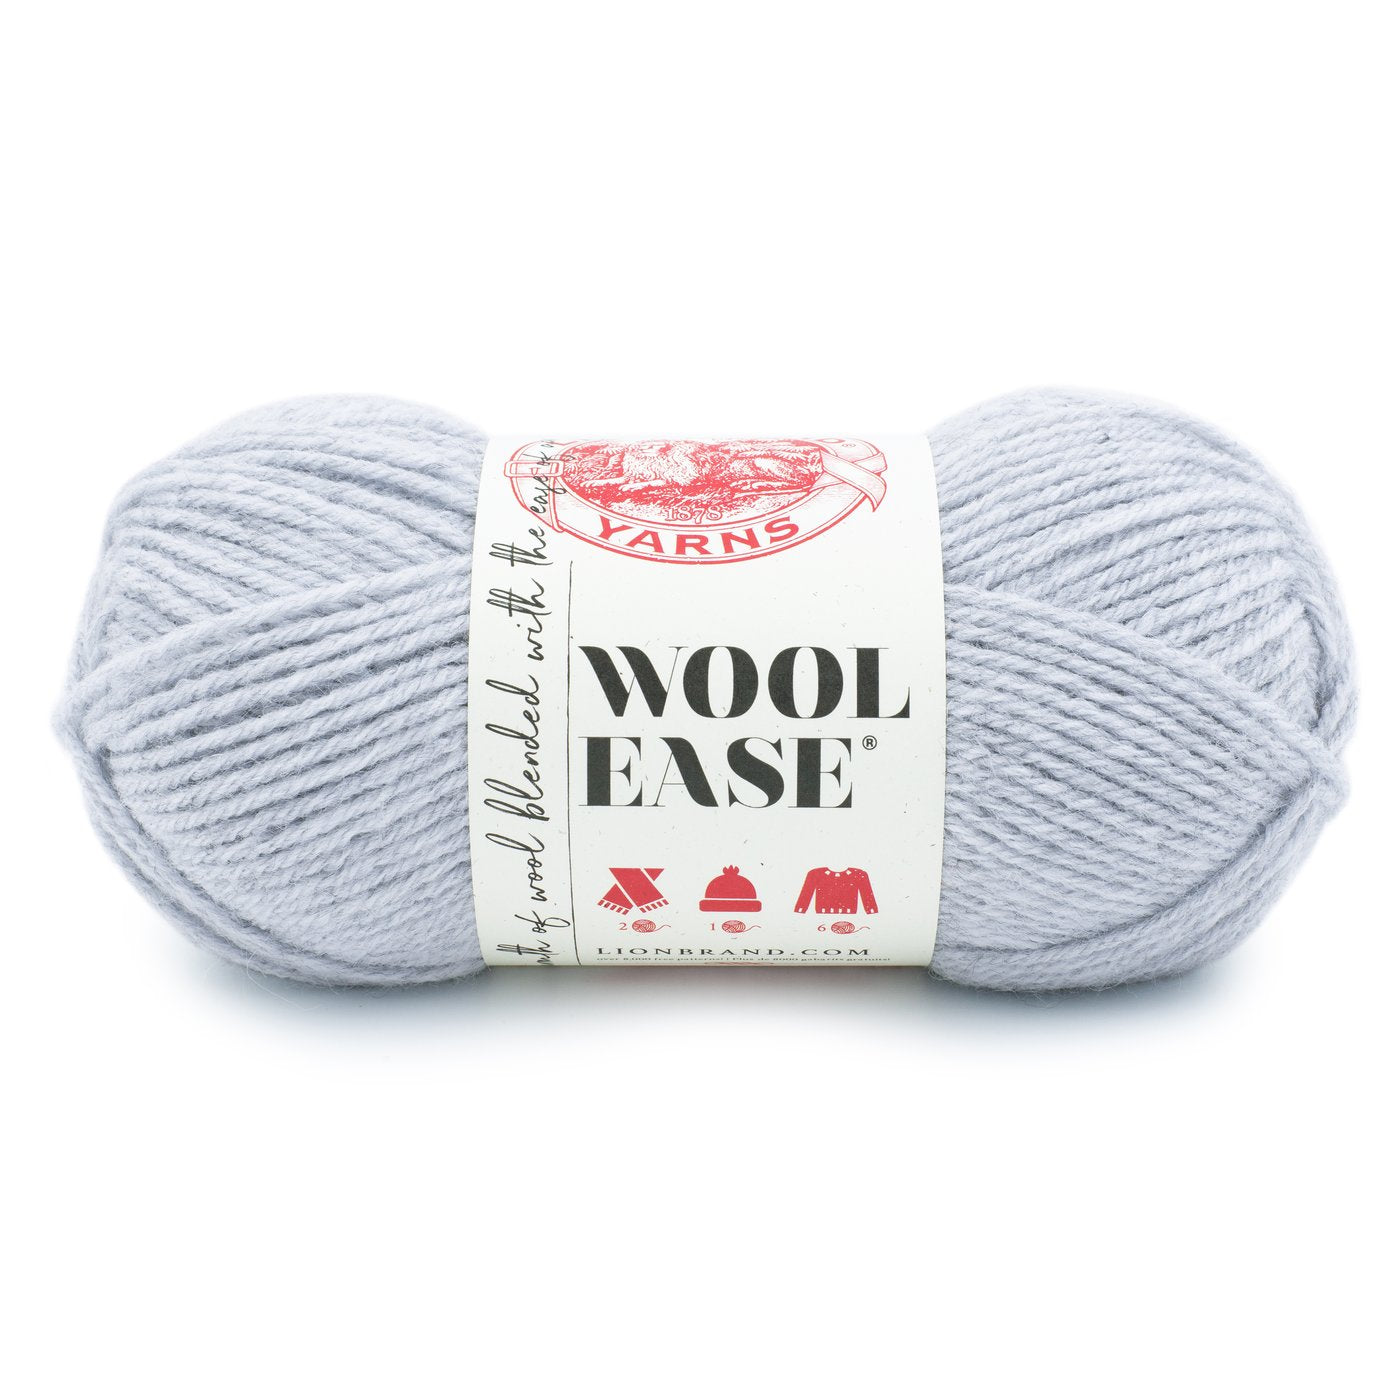 Lion Brand Wool-Ease in Icicle